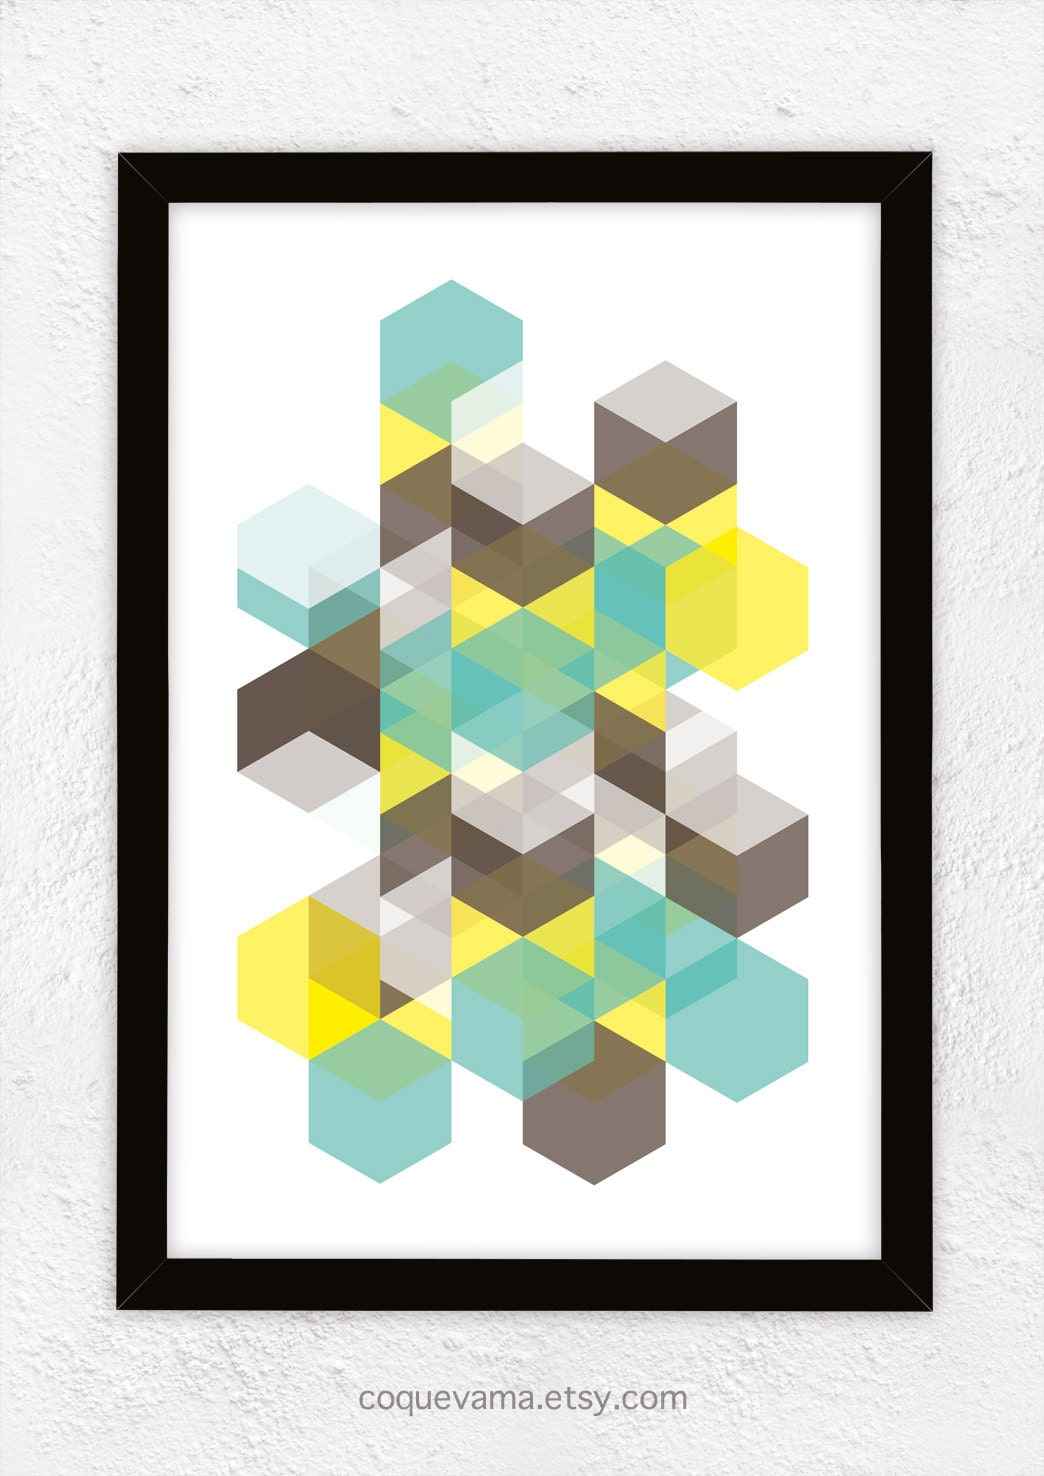 Art Print , A3, Poster, Hexagons - Yellow, Brown and Mint - Coquevama